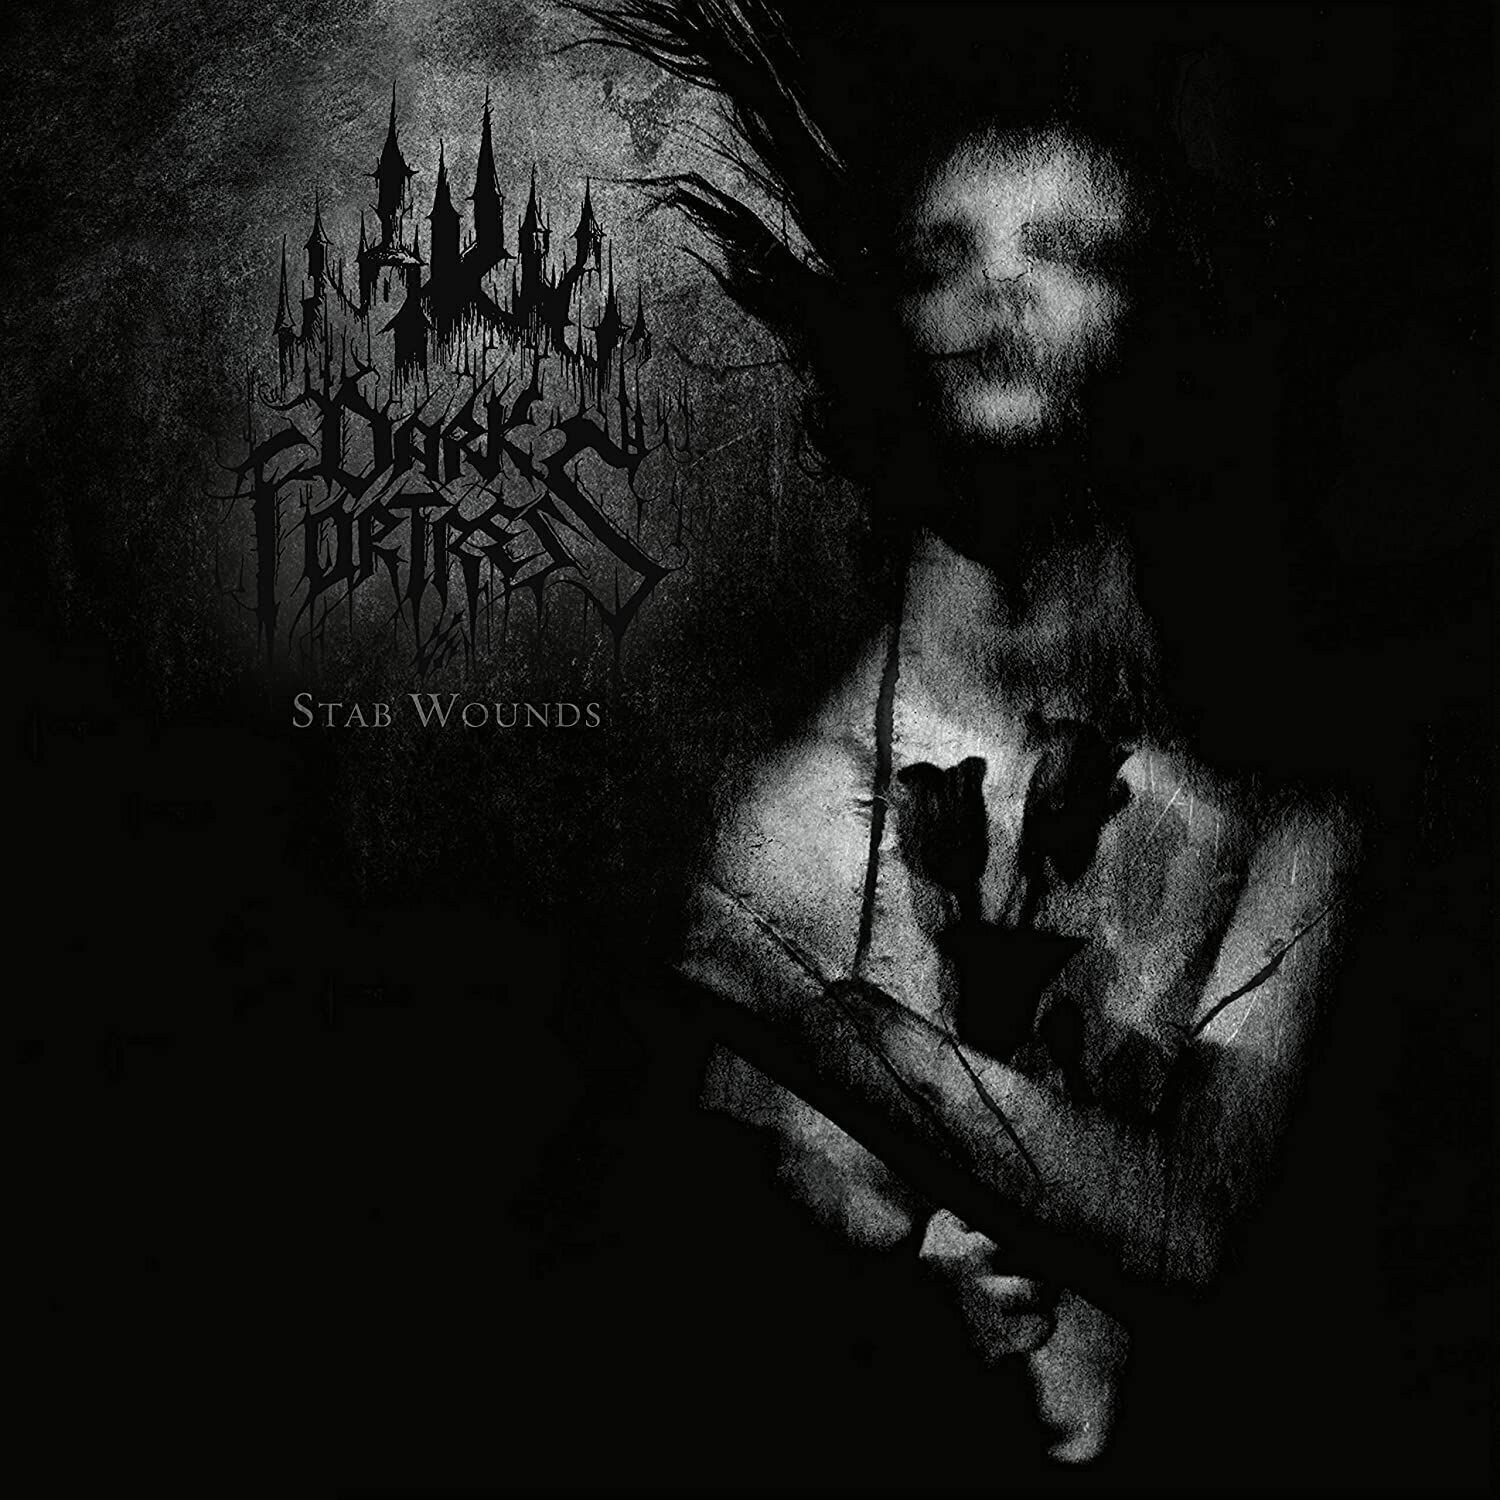 Review for Dark Fortress - Stab Wounds